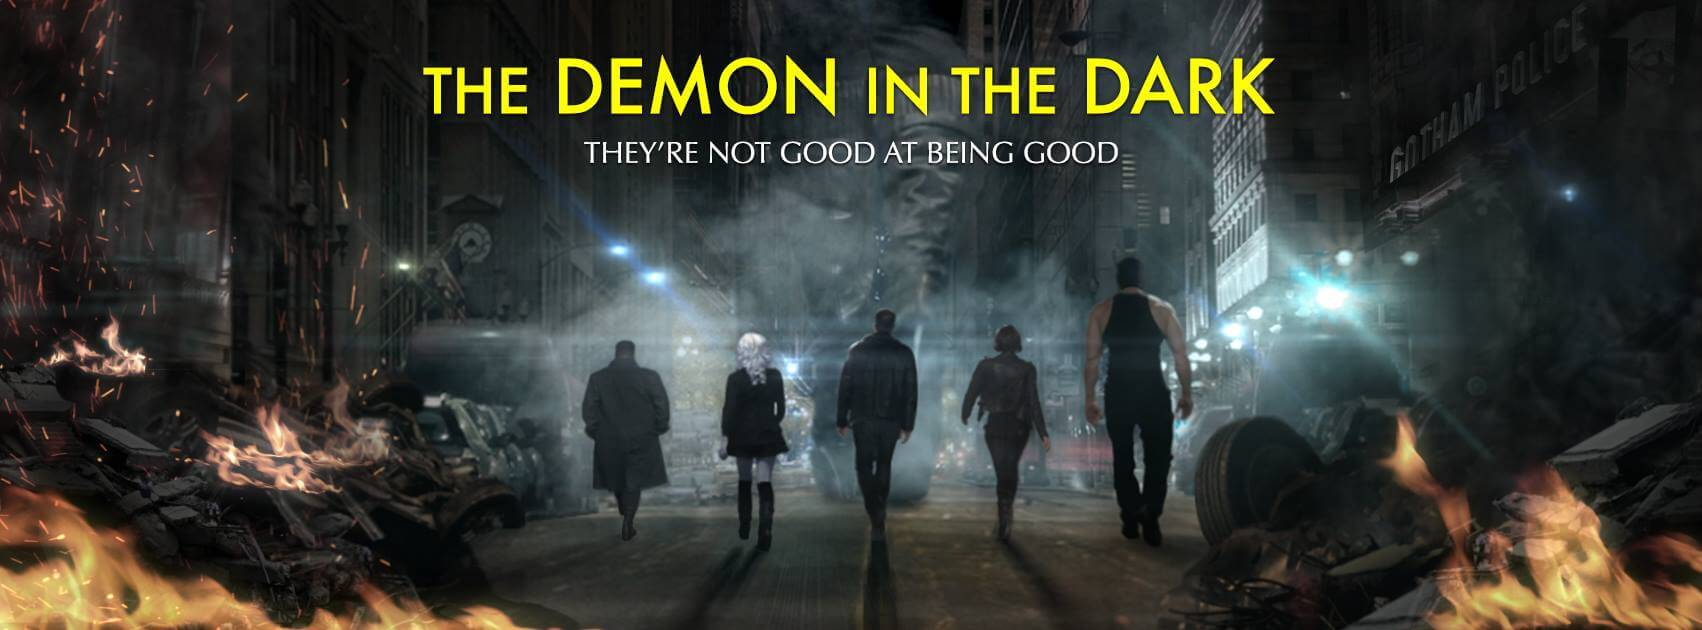 batmanthe demon in the dark 1 - Batman Fan Film The Demon in the Dark Will Strike Fear into Your Heart